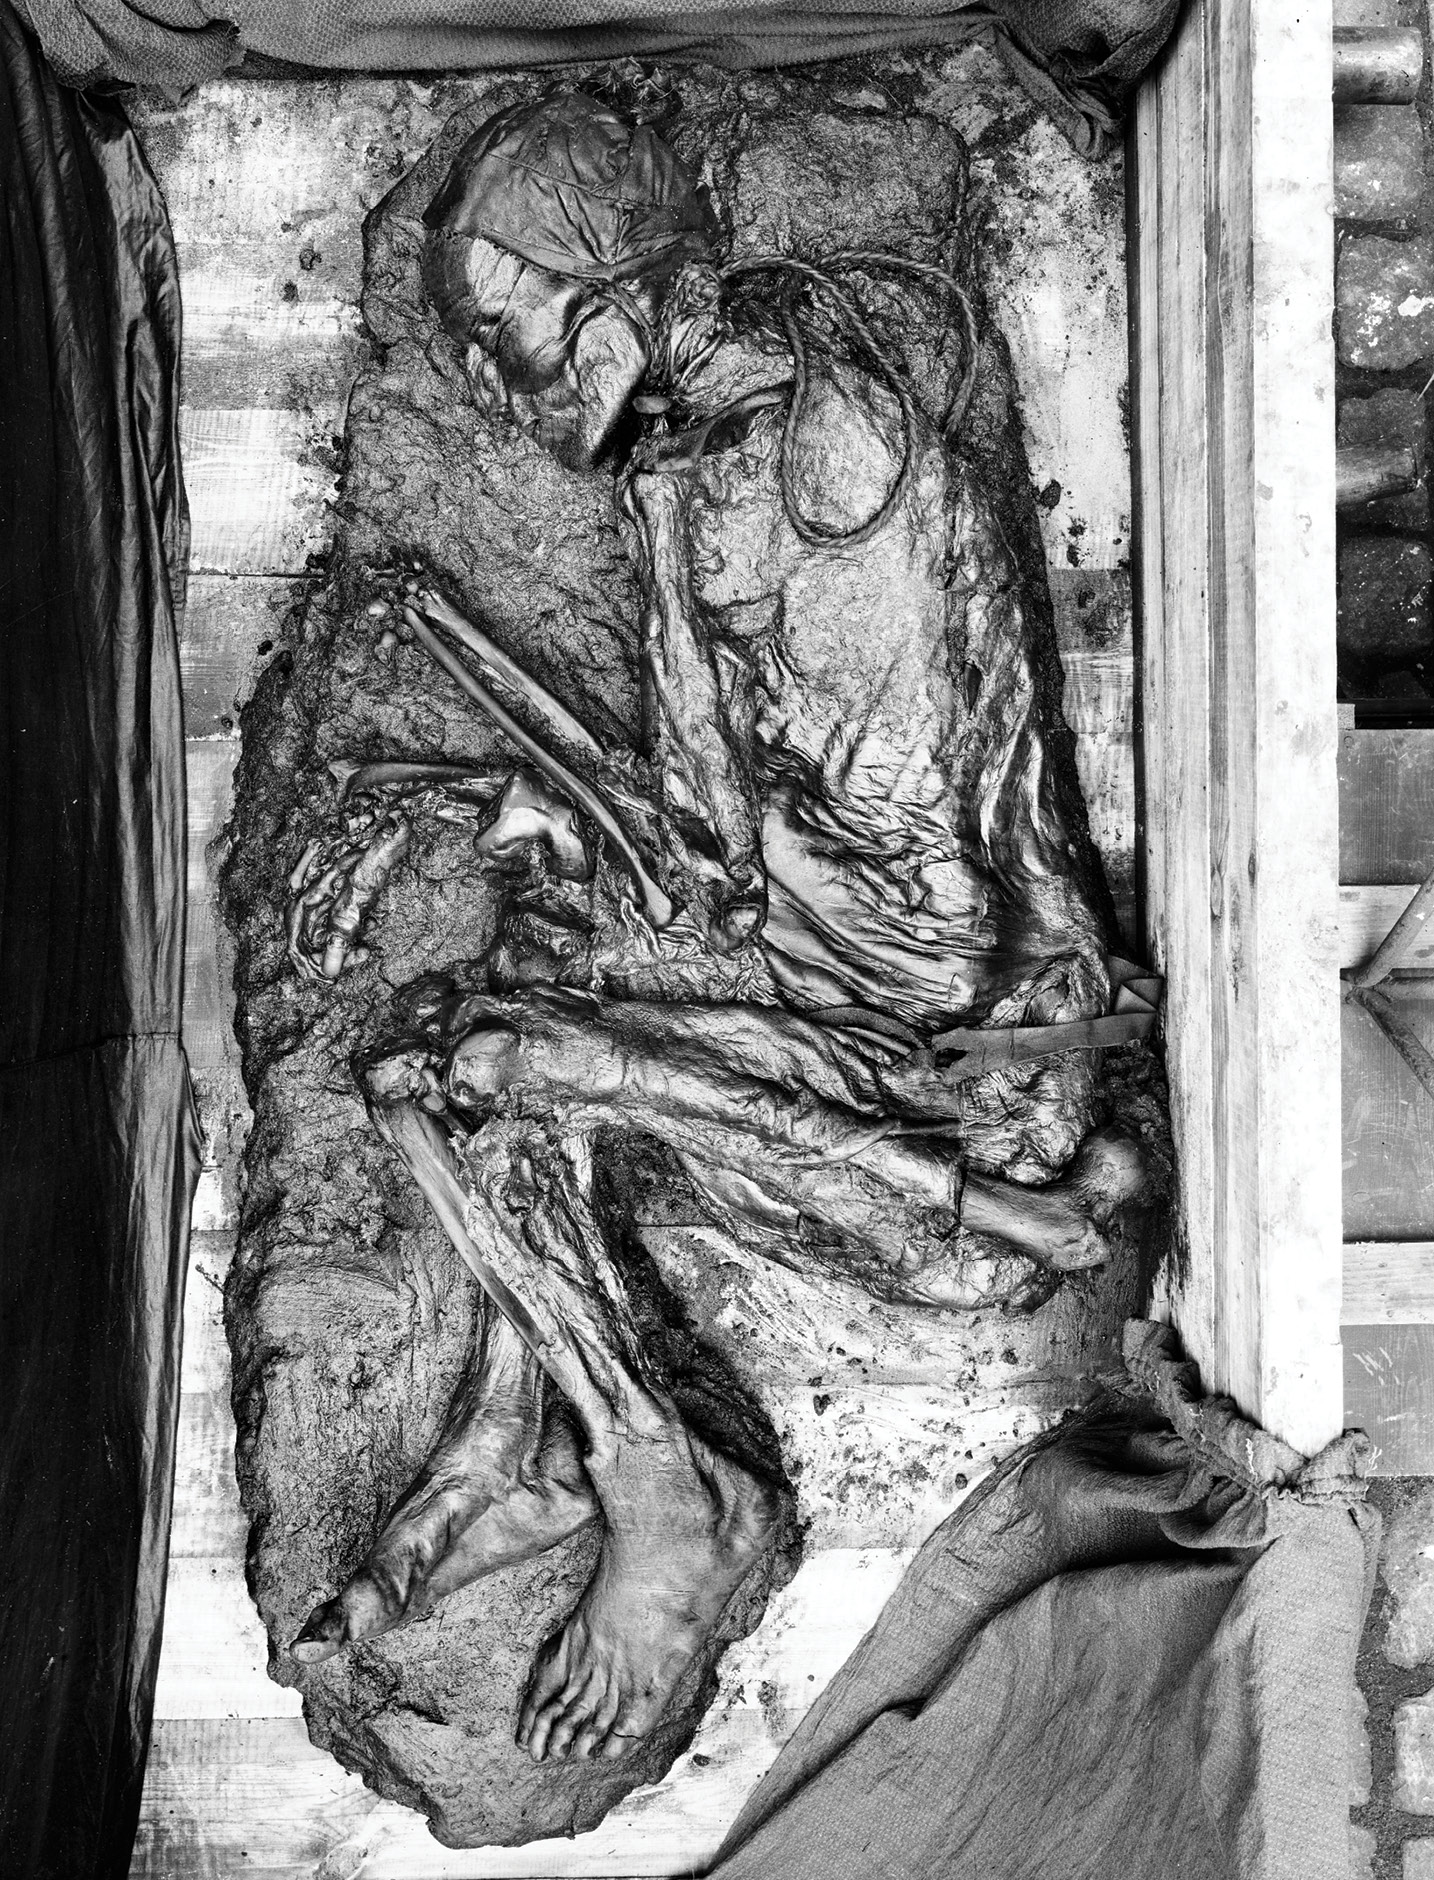 "RIGHT Tollund Man is one of Denmark's most famous bog bodies. This photograph shows how he looked when he was discovered in Jutland in 1950. While discussions of bog bodies are often dominated by their deaths, we can also understand much about the individuals' lives, thanks to their well-preserved remains. Tollund Man was around 30 years old at the time of his death and had stood 5'2"" tall. His last meal comprised barley, oats, venison, and wild weeds, and he was placed in the bog wearing a sheepskin leather cap."